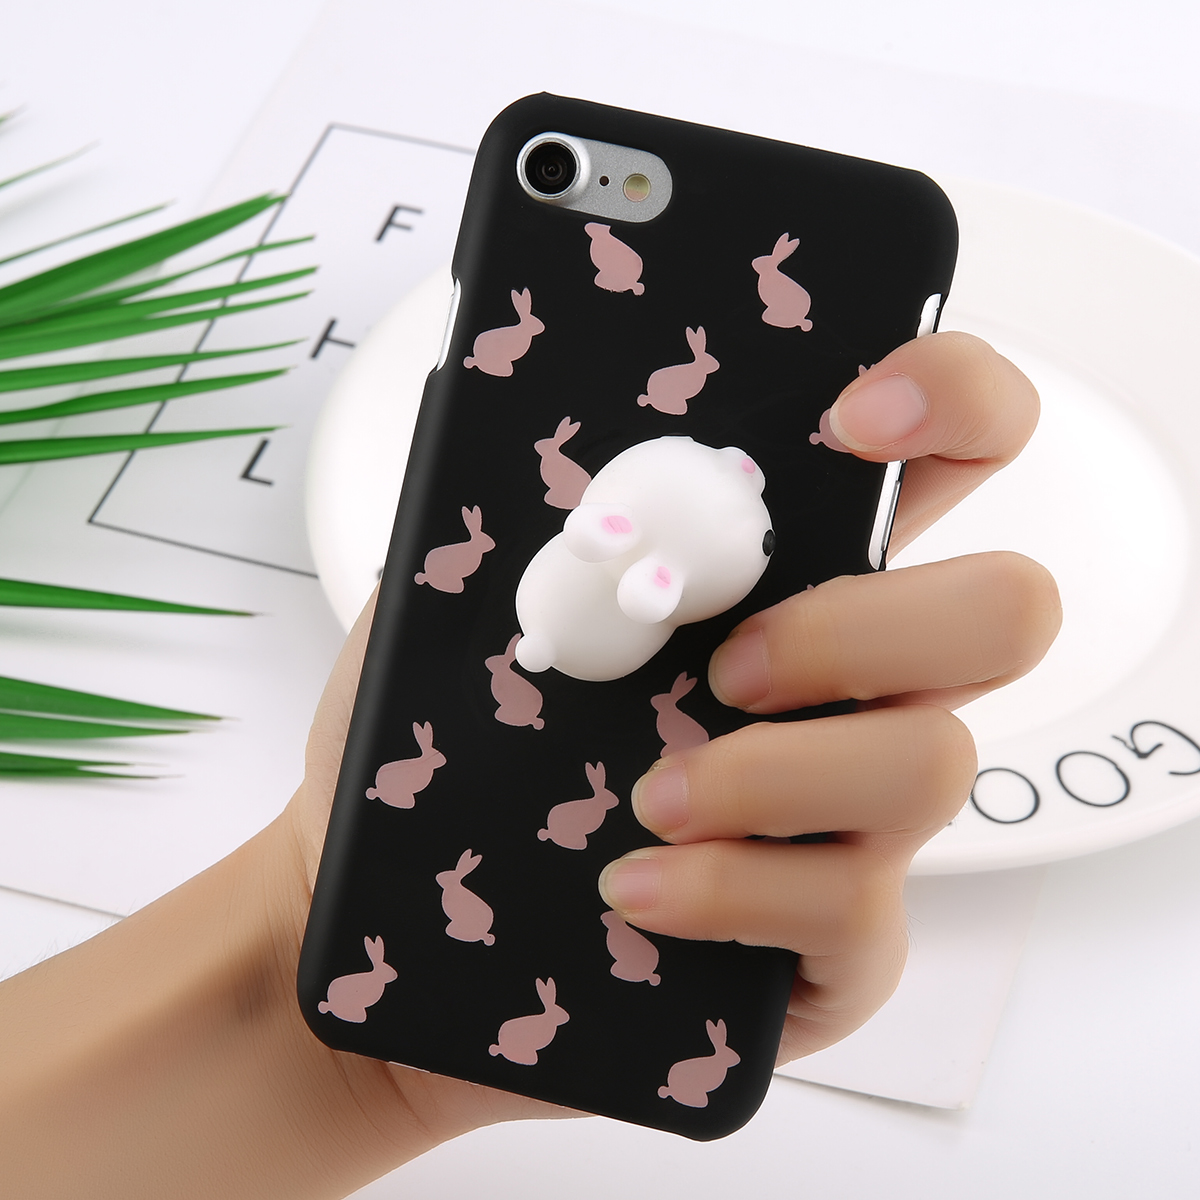 Squishy 3D Soft Silicone Rabbit + Hard PC Phone Case Cover For iPhone 6s 7 Plus eBay